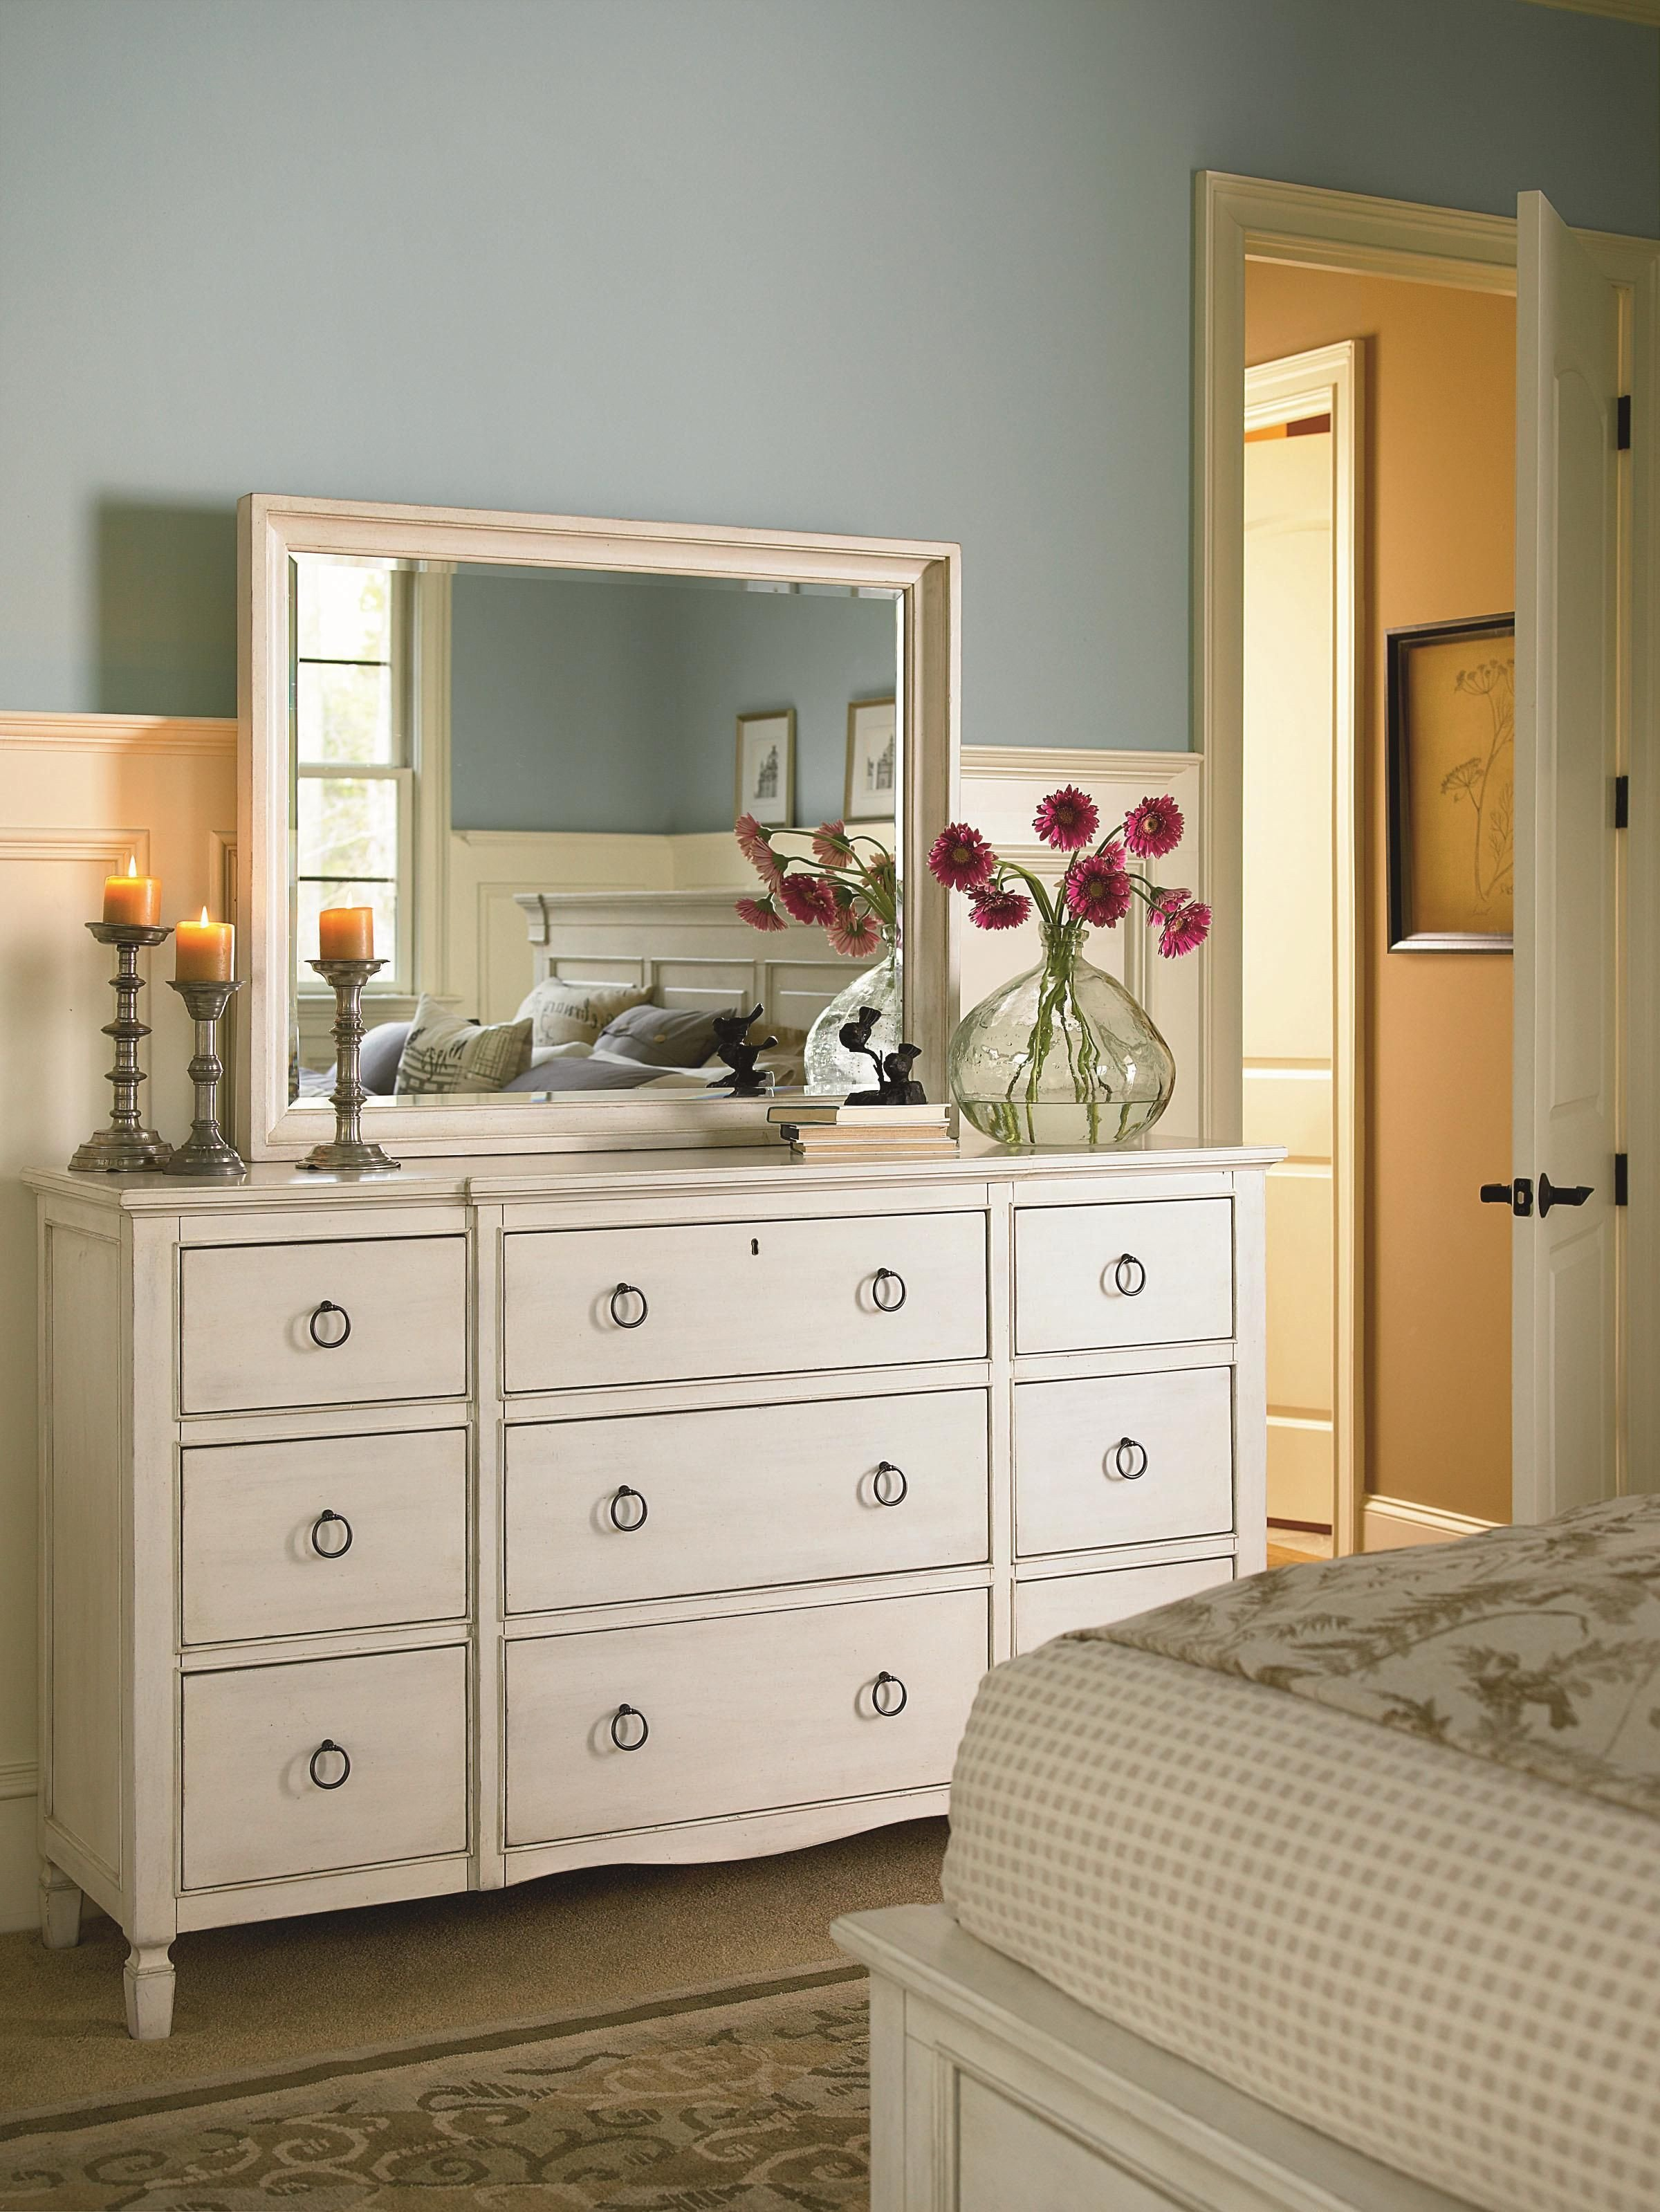 Bedroom Dressers On Sale Lovely Summer Hill 9 Drawer Dresser with Break Front by Universal